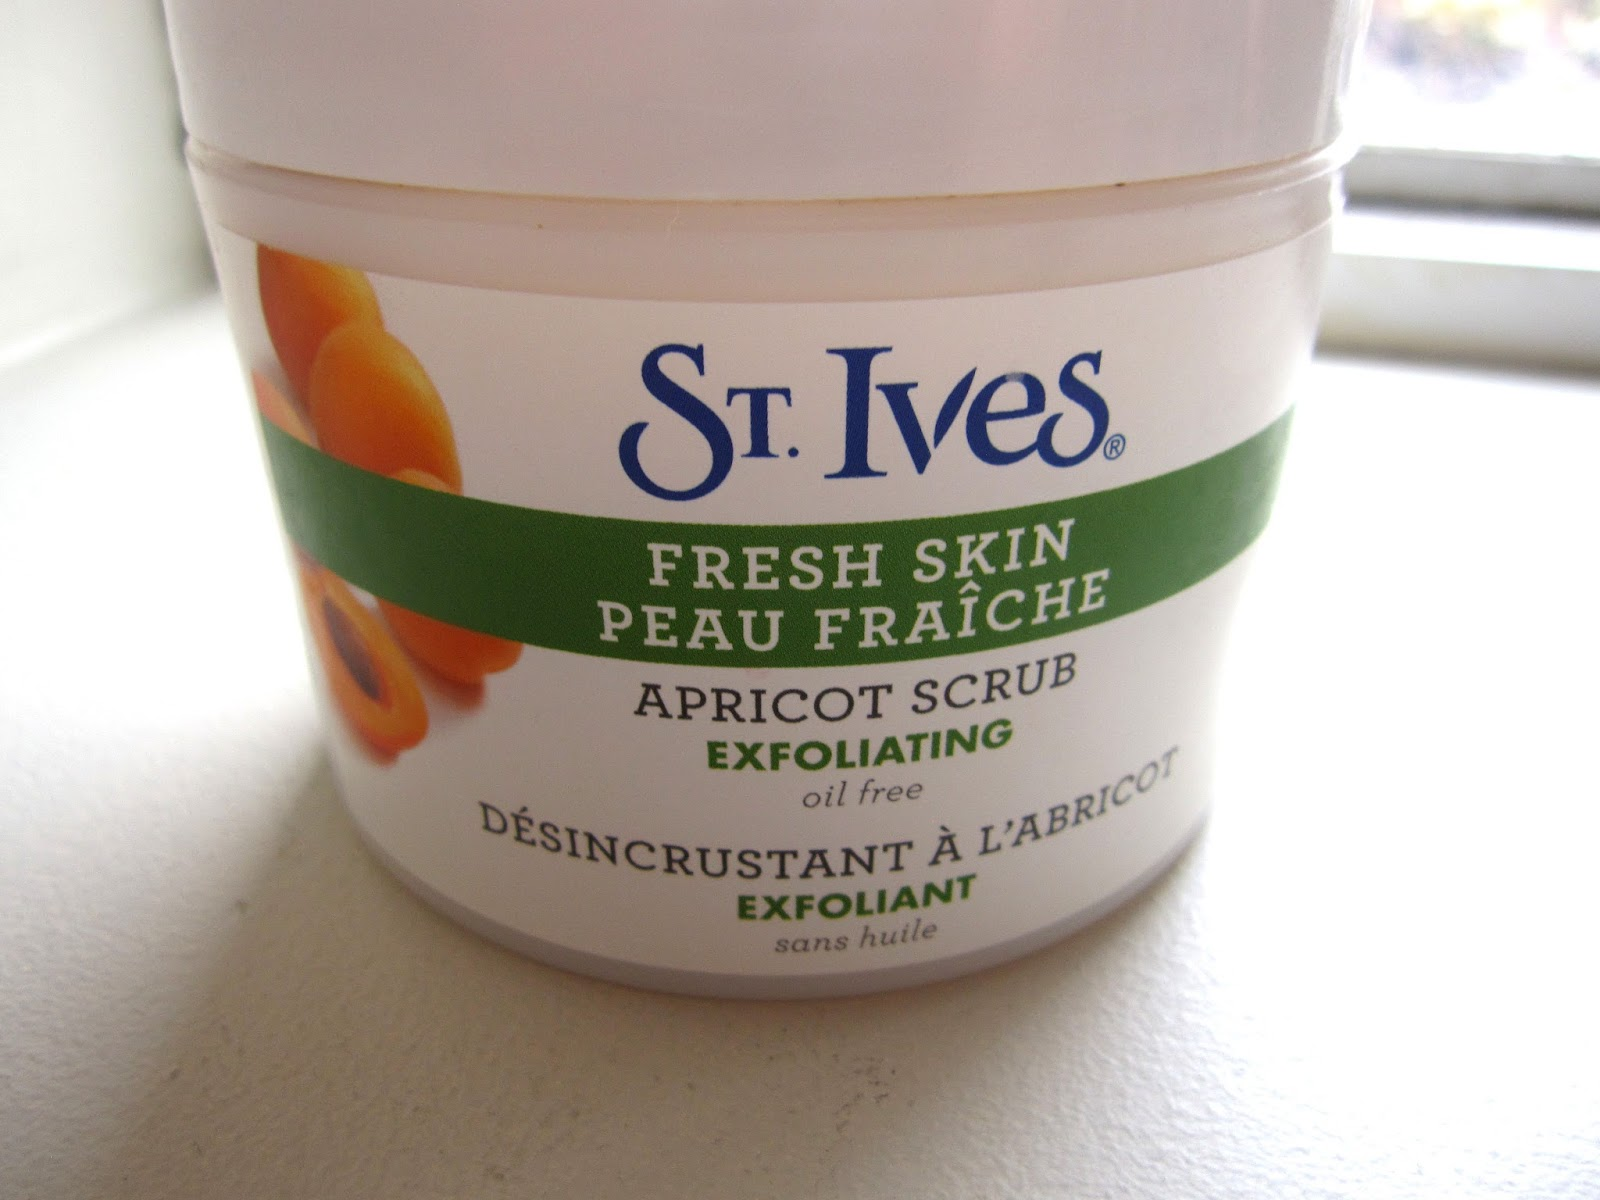 St. Ives Fresh Skin Apricot Scrub review